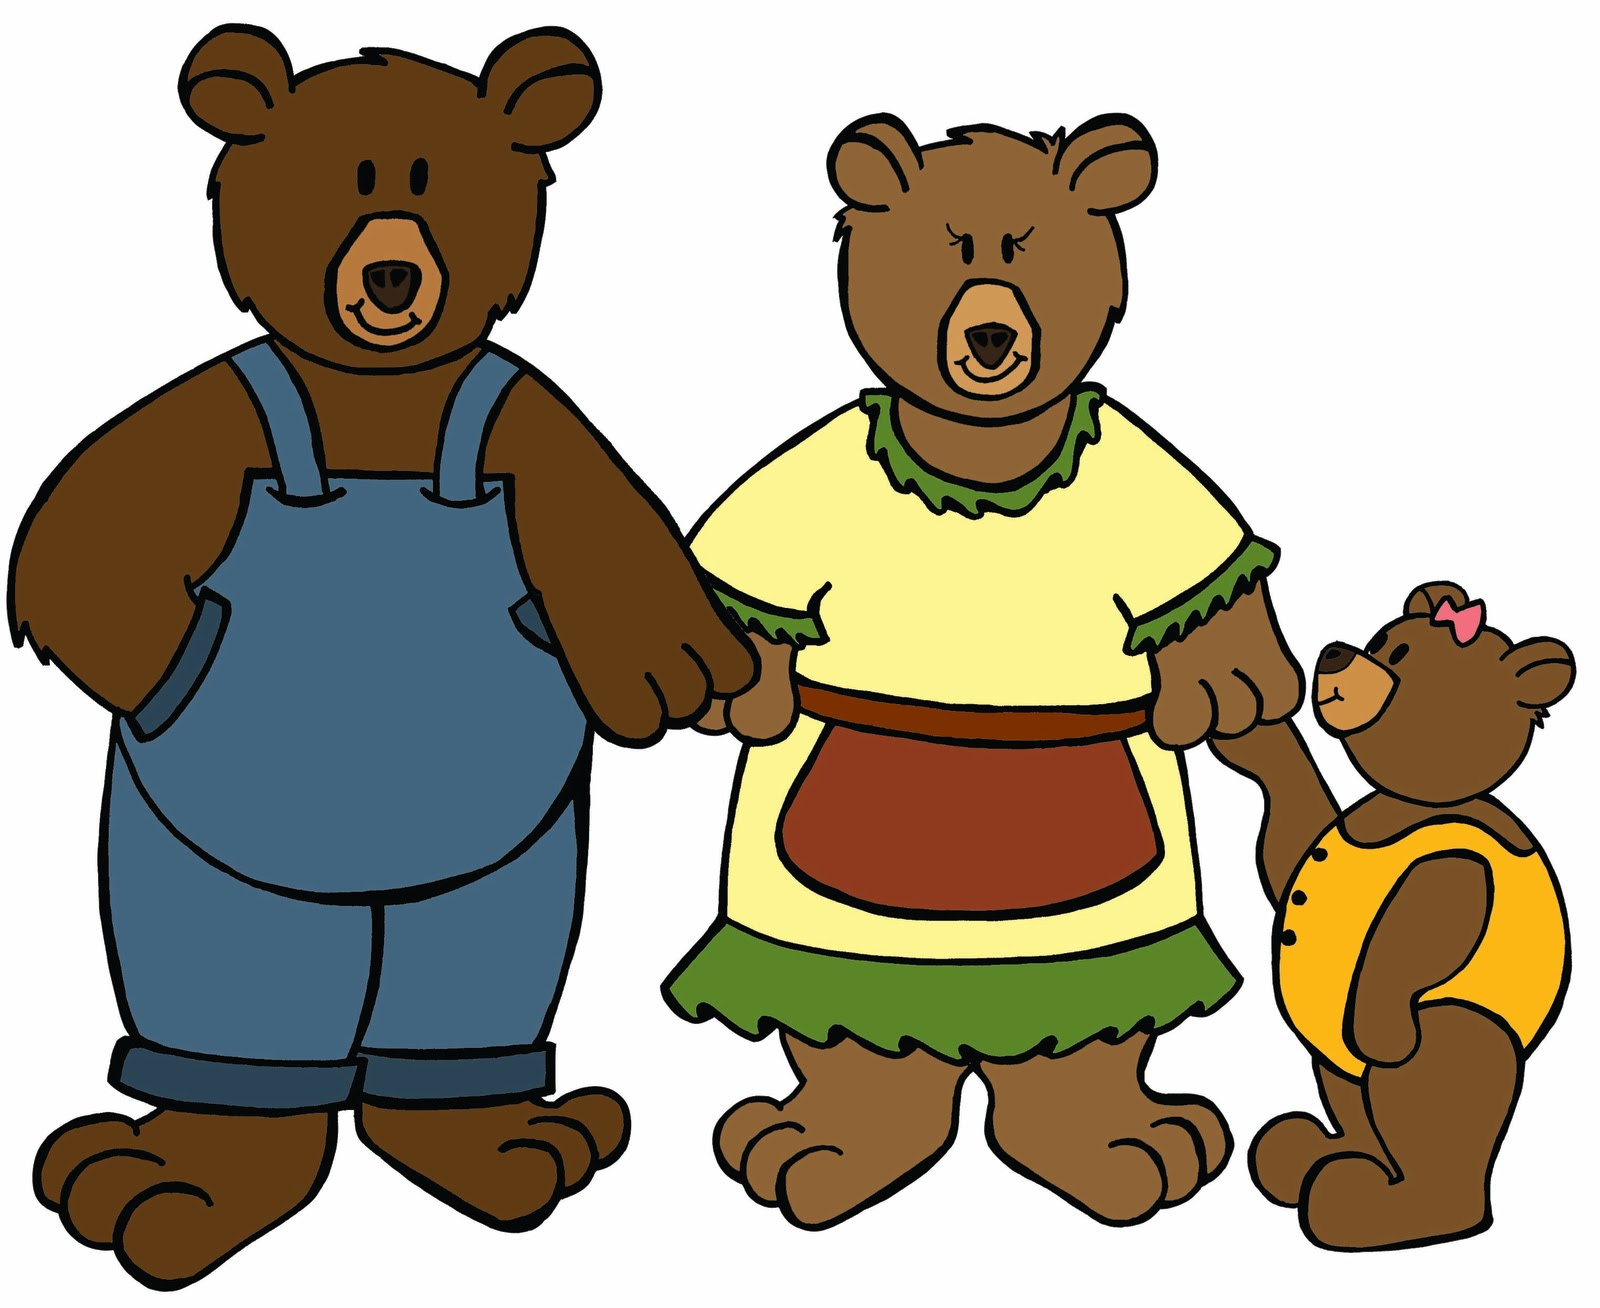 Three bears clipart 20 free Cliparts   Download images on ...